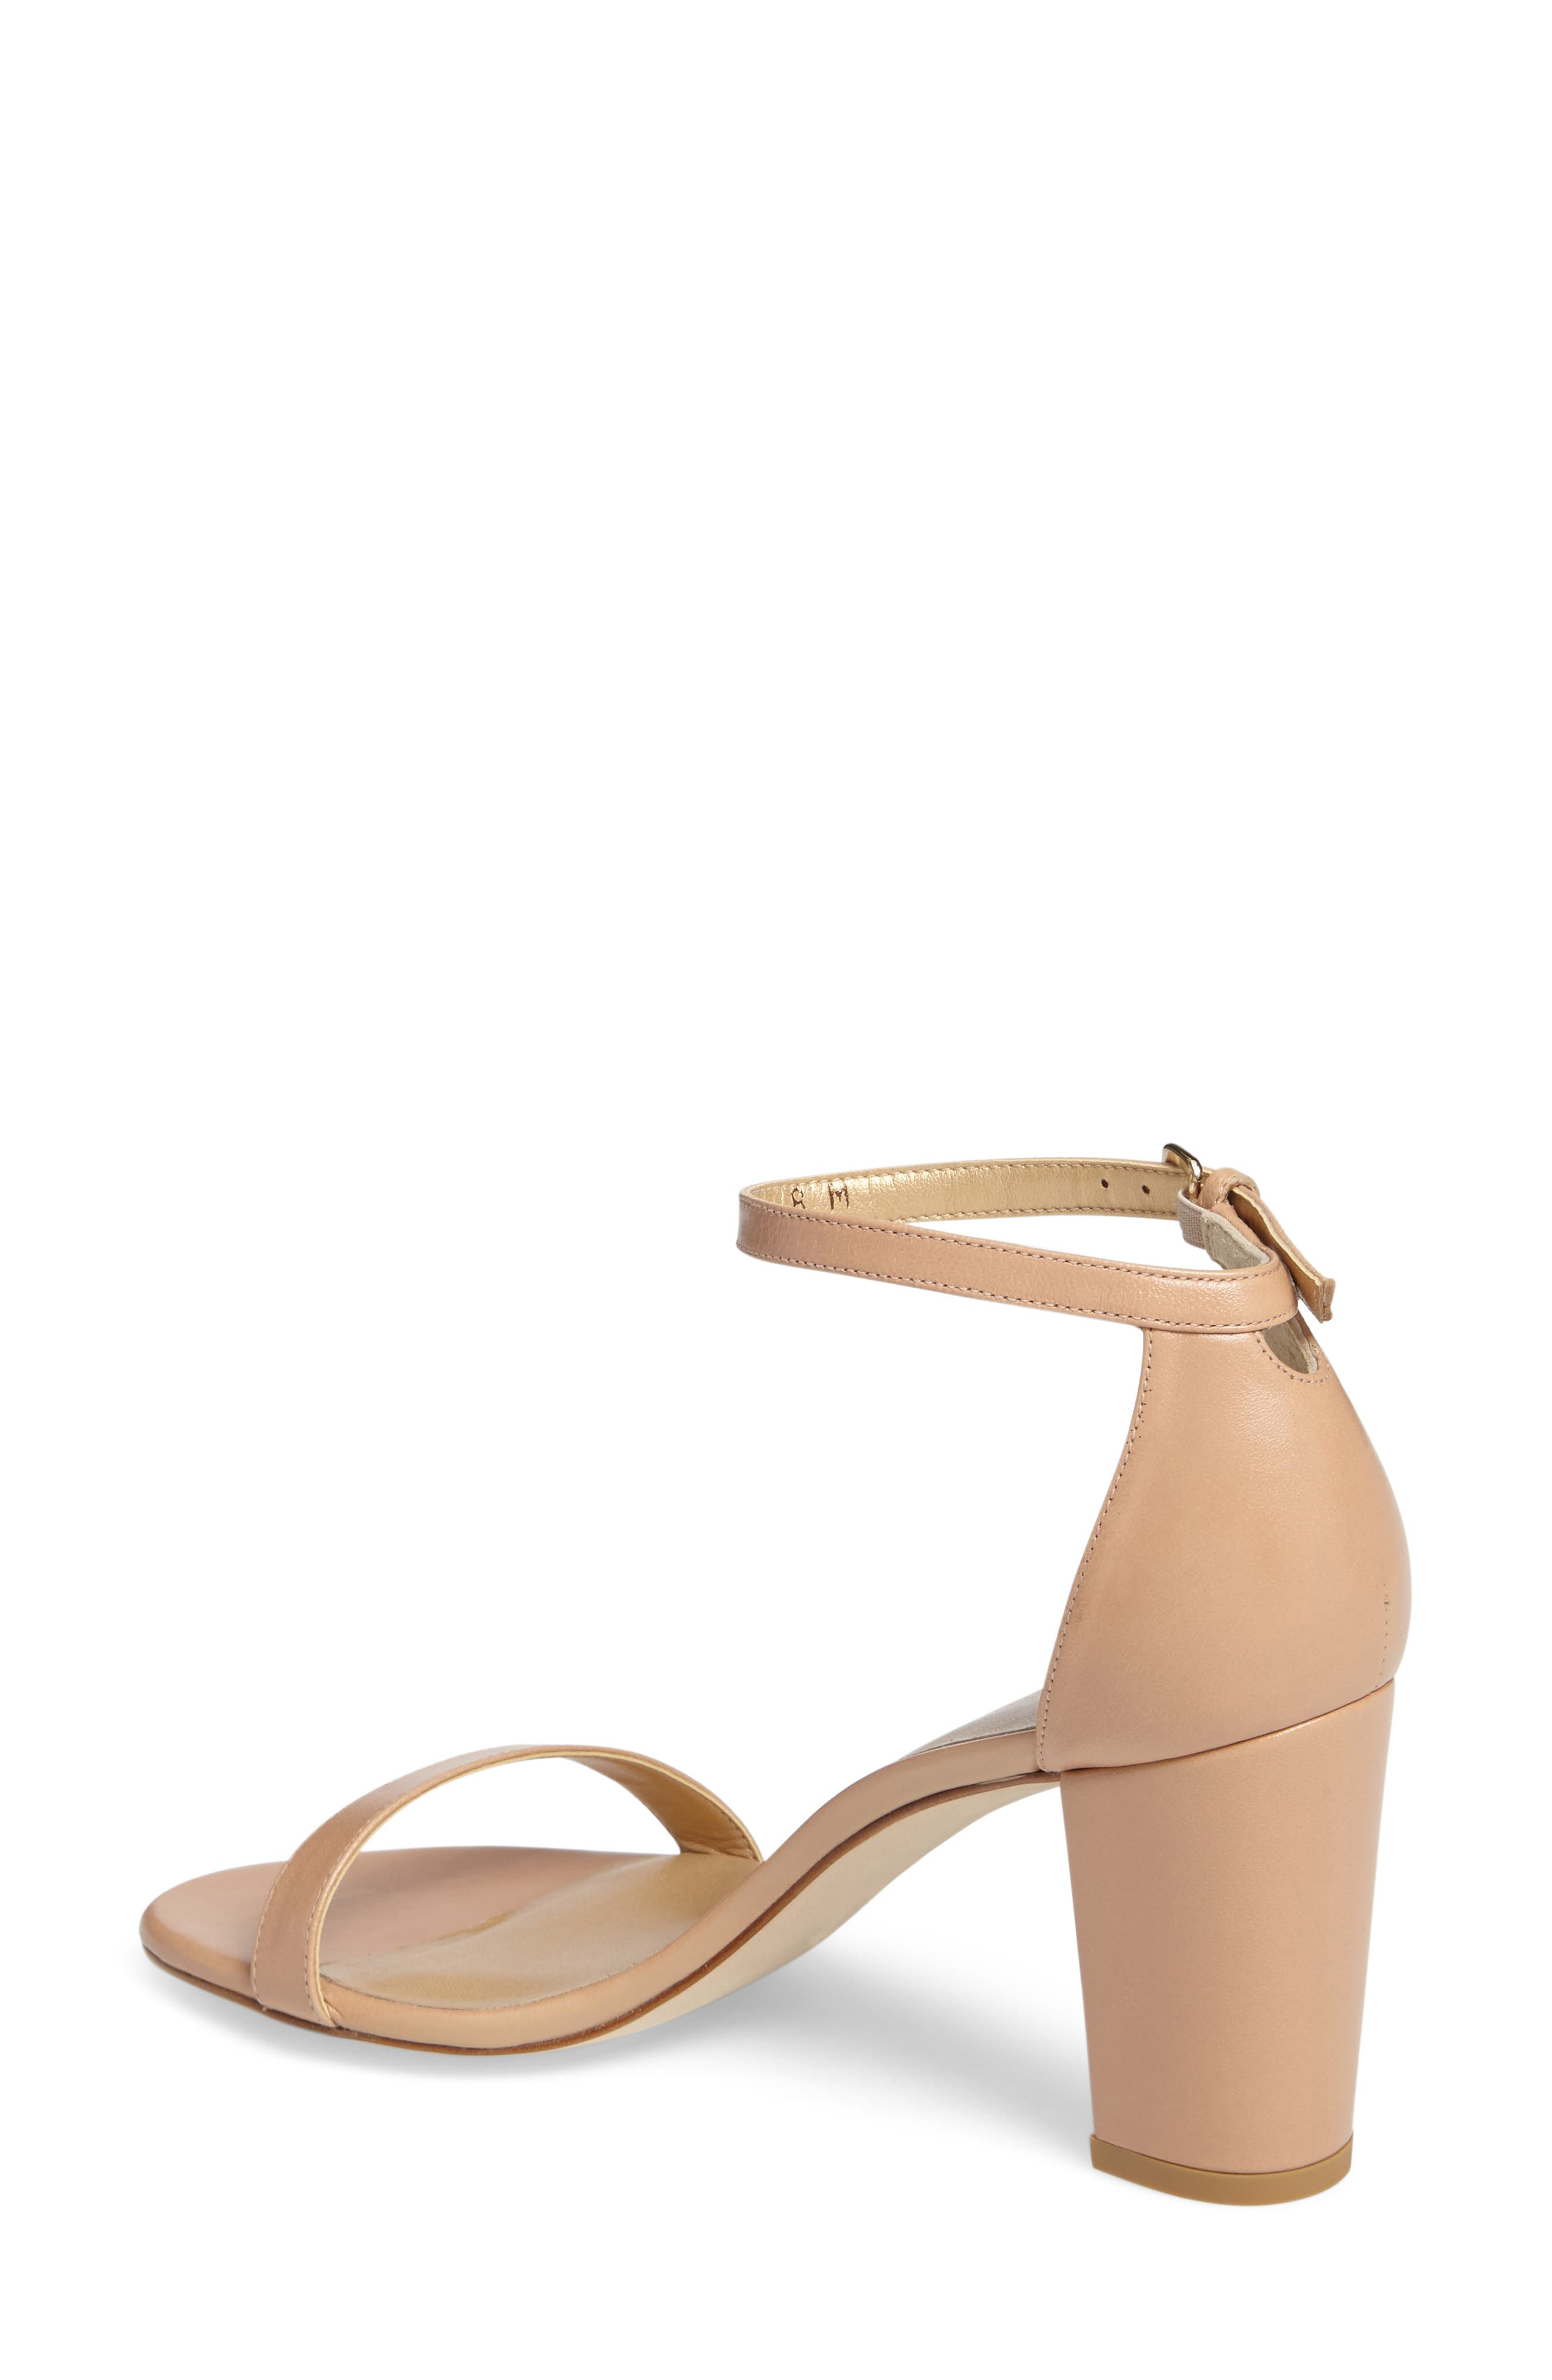 NearlyNude Ankle Strap Sandal,                             Alternate thumbnail 47, color,